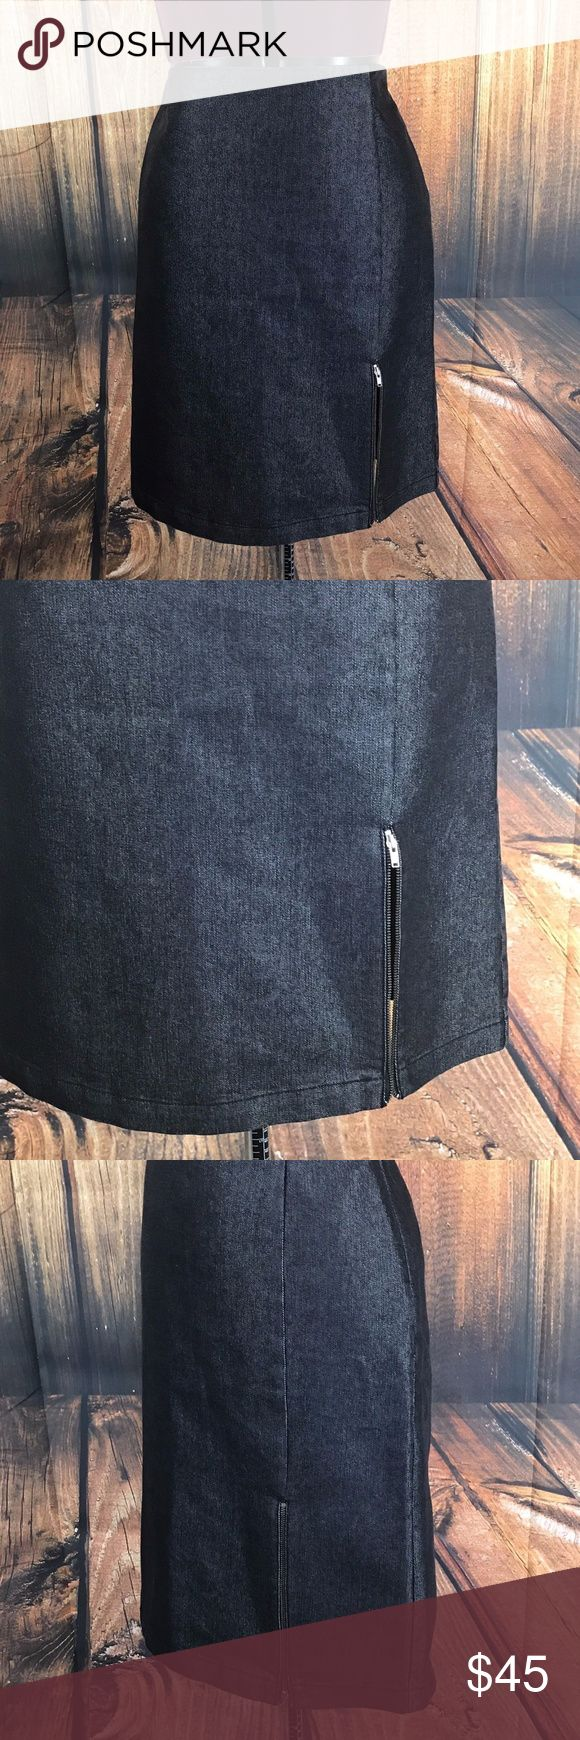 """A/X Armani Exchange Black Zip Vent Pencil Skirt Fabulous skirt by AX Armani Exchange  Denim feel skirt  Side zip  Zip vents, one on front and one in back  60% Cotton, 40% polyester  Size 4  Measures 14"""" across waistband, flat  Measures 22"""" long  Gently worn, good condition  Very cute skirt! Throw on an oversized sweater, tall boots and leggings and be on trend! A/X Armani Exchange Skirts Pencil"""